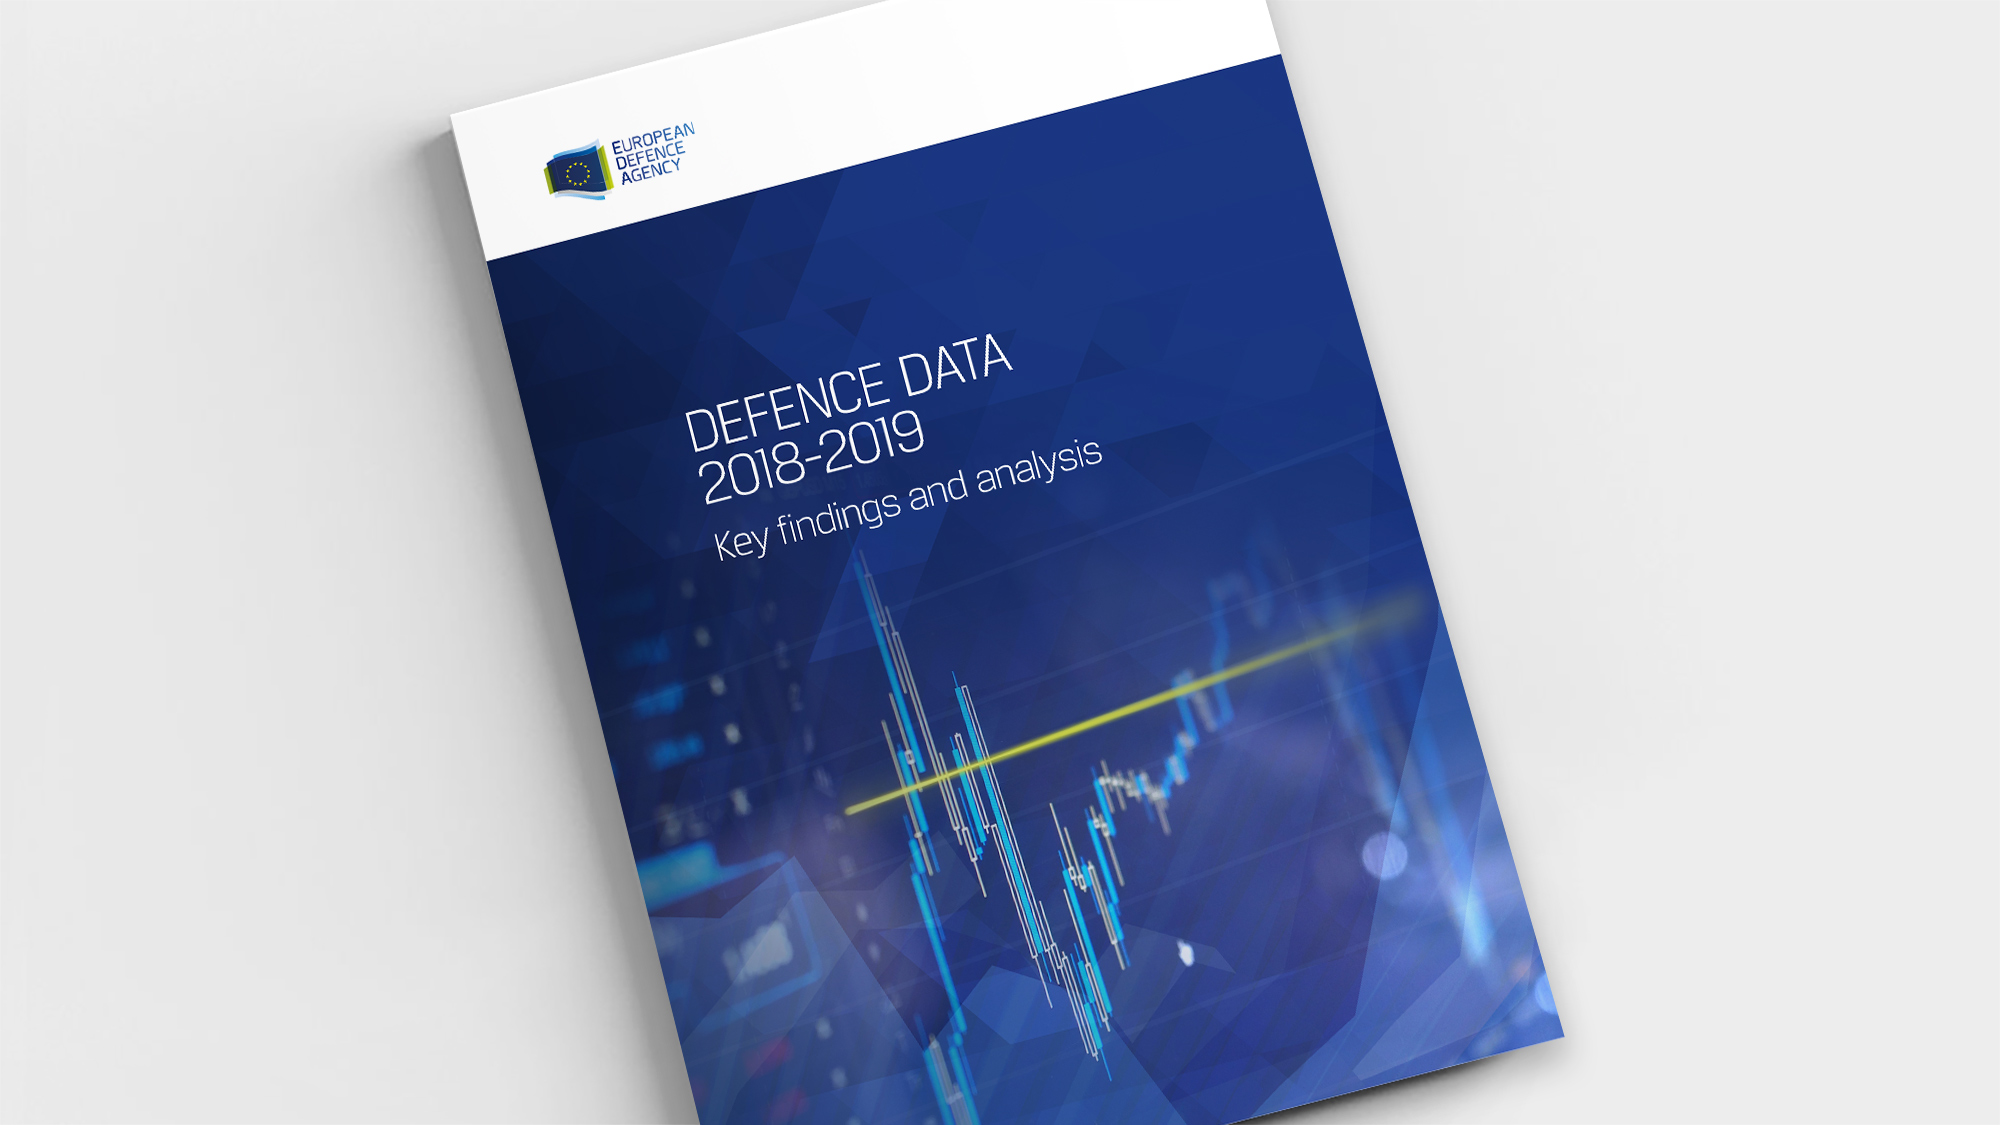 Defence-Data-2018-2019_16x9